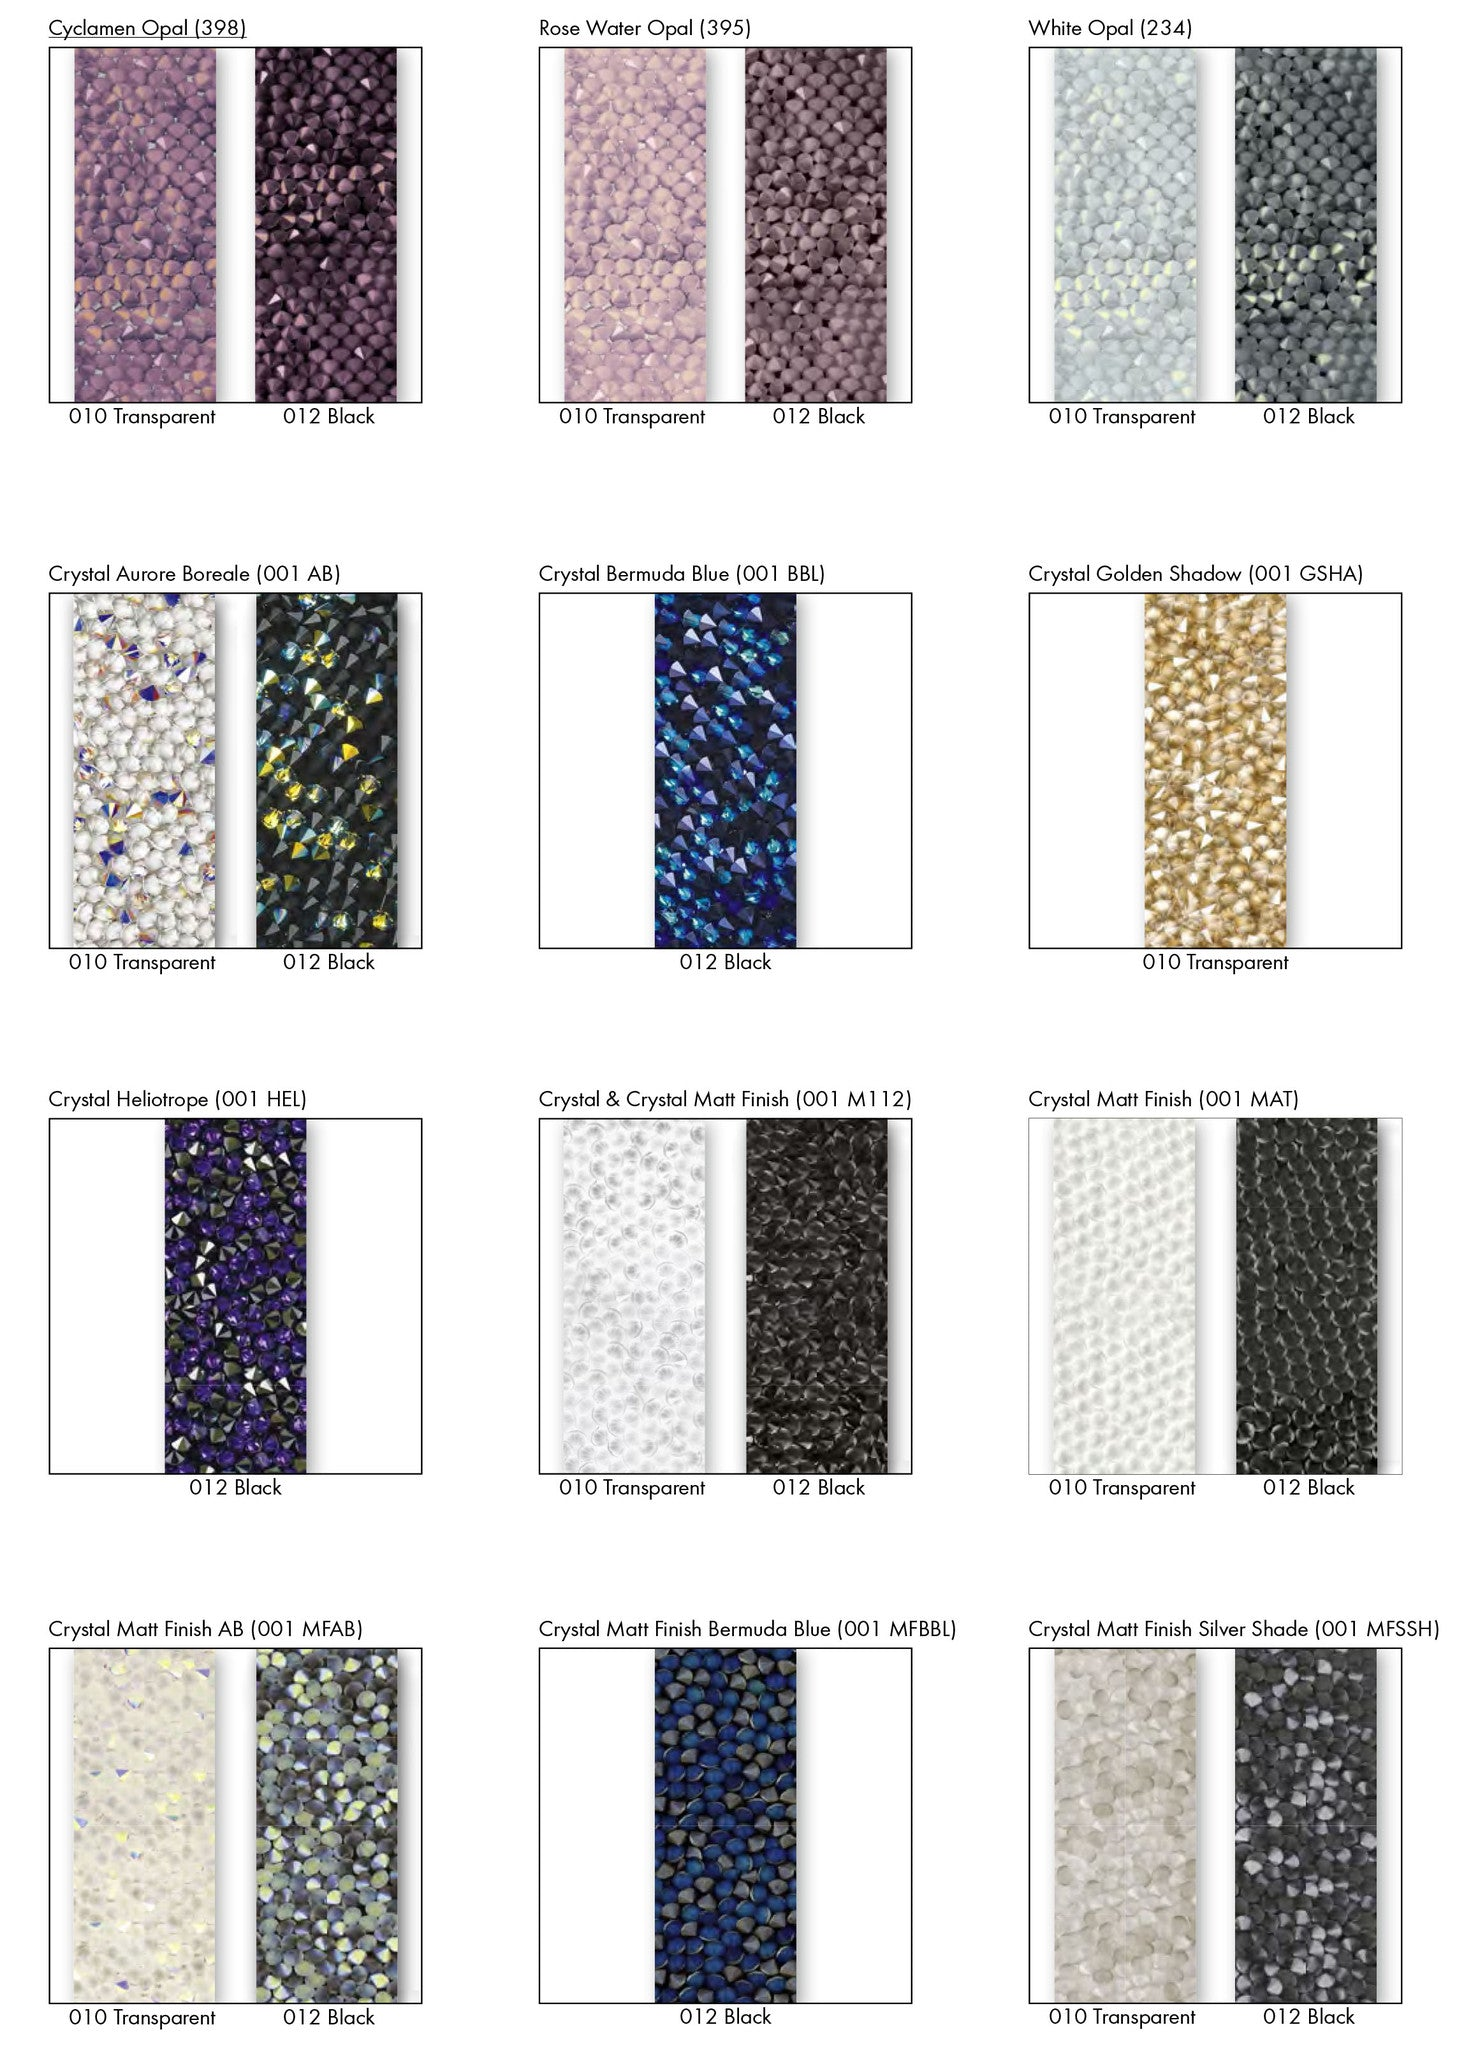 Swarovski synthetics crystal rocks transfers motifs design and colour options